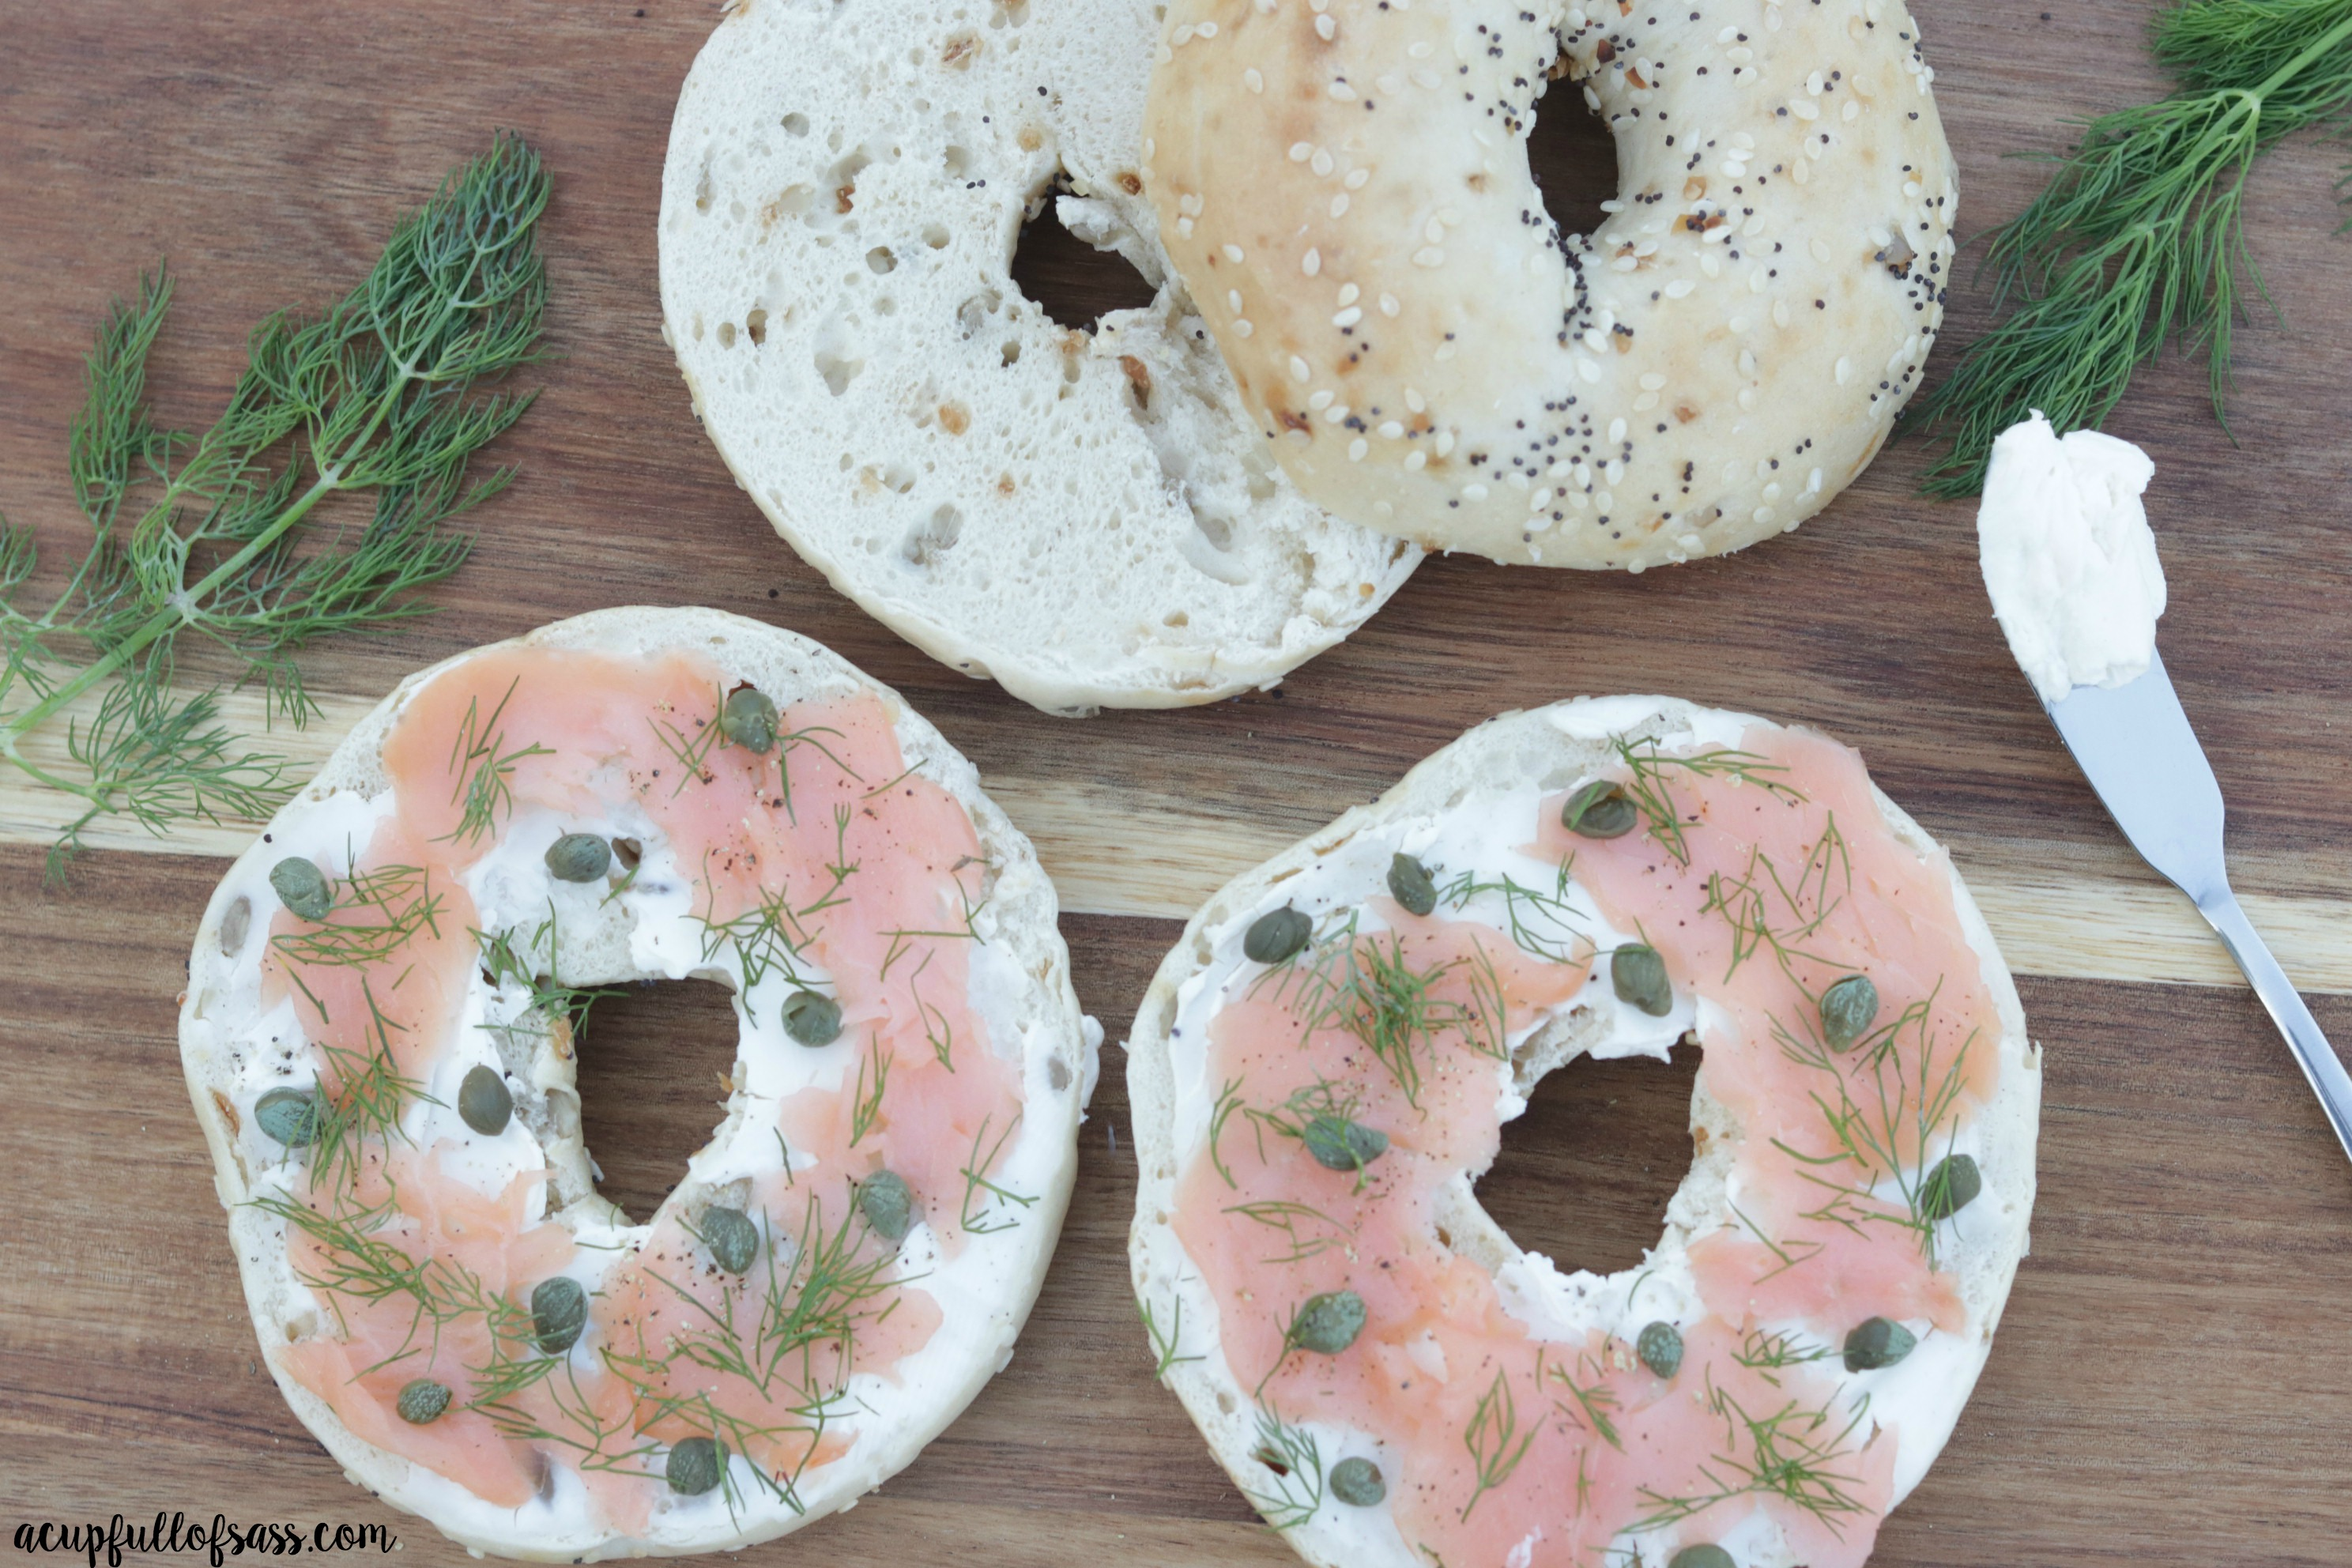 everything-bagel-with-lox-cream-cheese-fresh-dill-and-capers